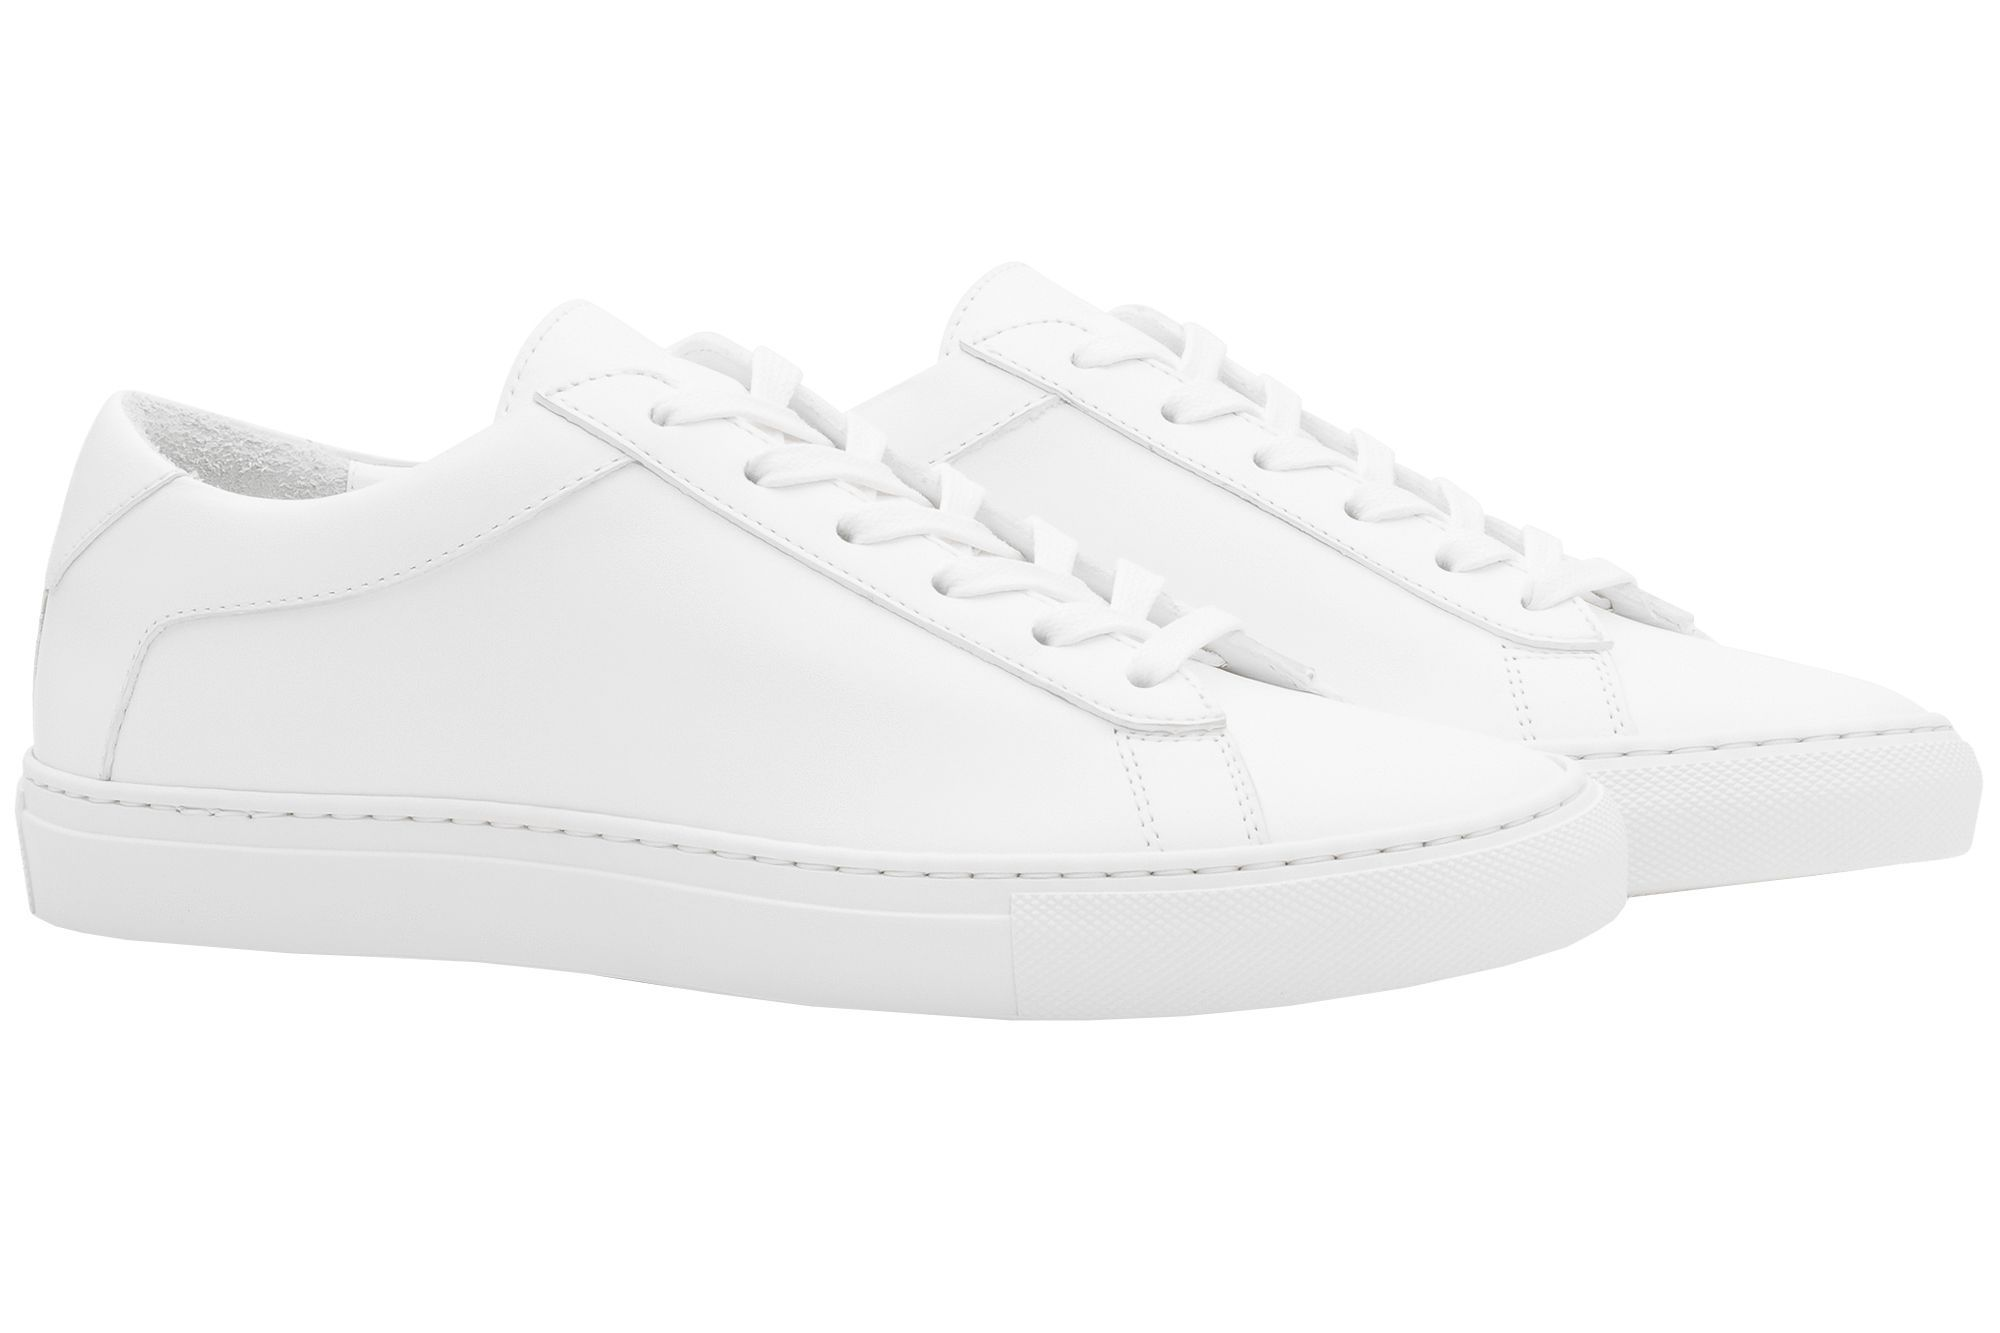 71ec1f30a8b09 16 Best White Sneakers for Men in 2019 - 16 White Shoes to Wear Right Now